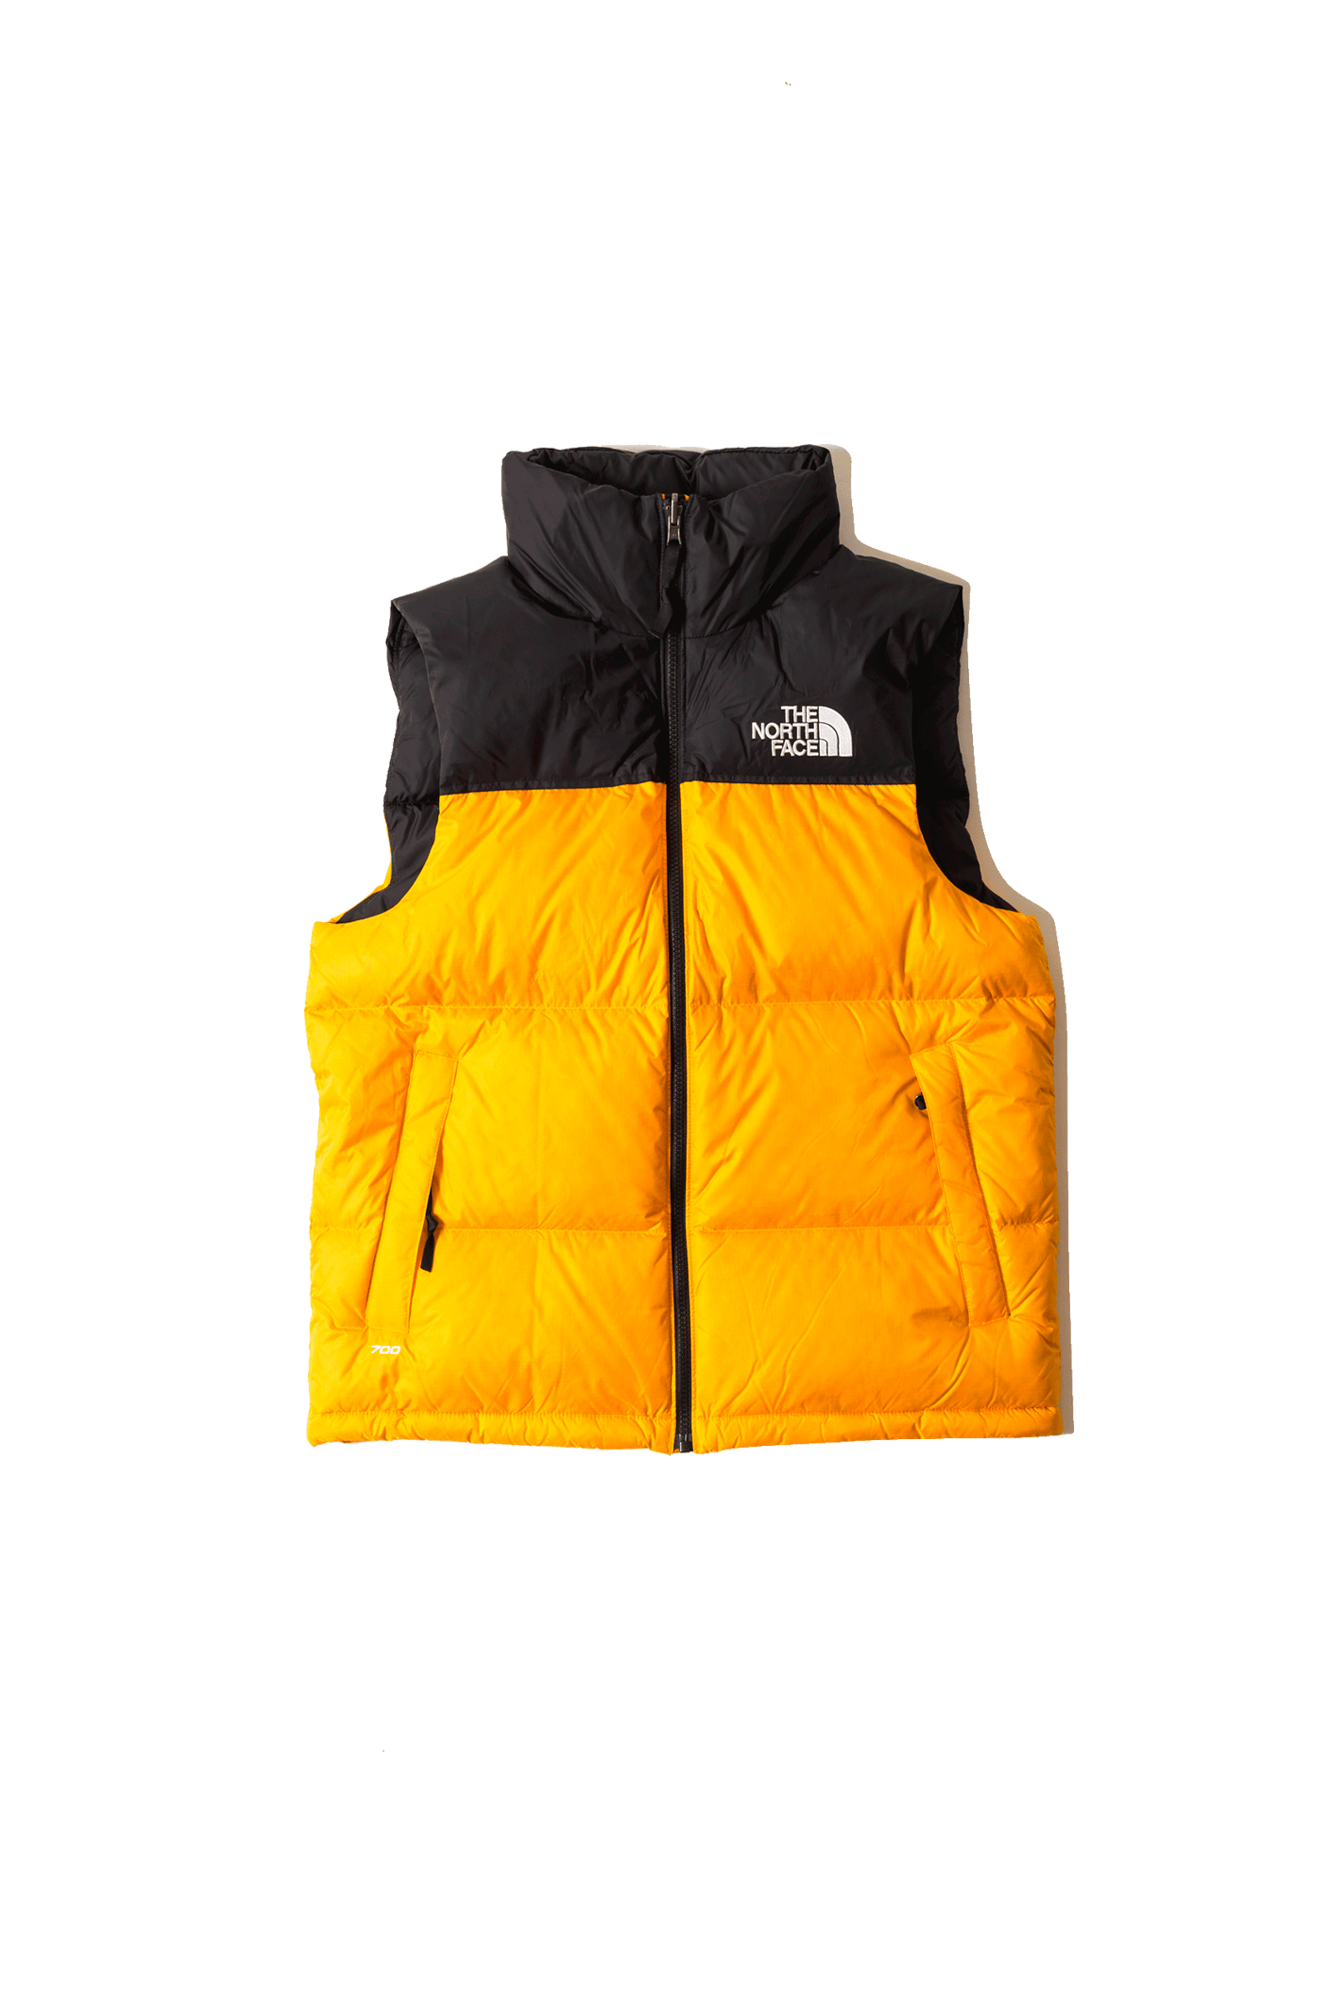 The North Face Coats & Jackets 1996 Retro Nuptse Vest Yellow T93JQQH6G#000#YELLOW#XS - One Block Down